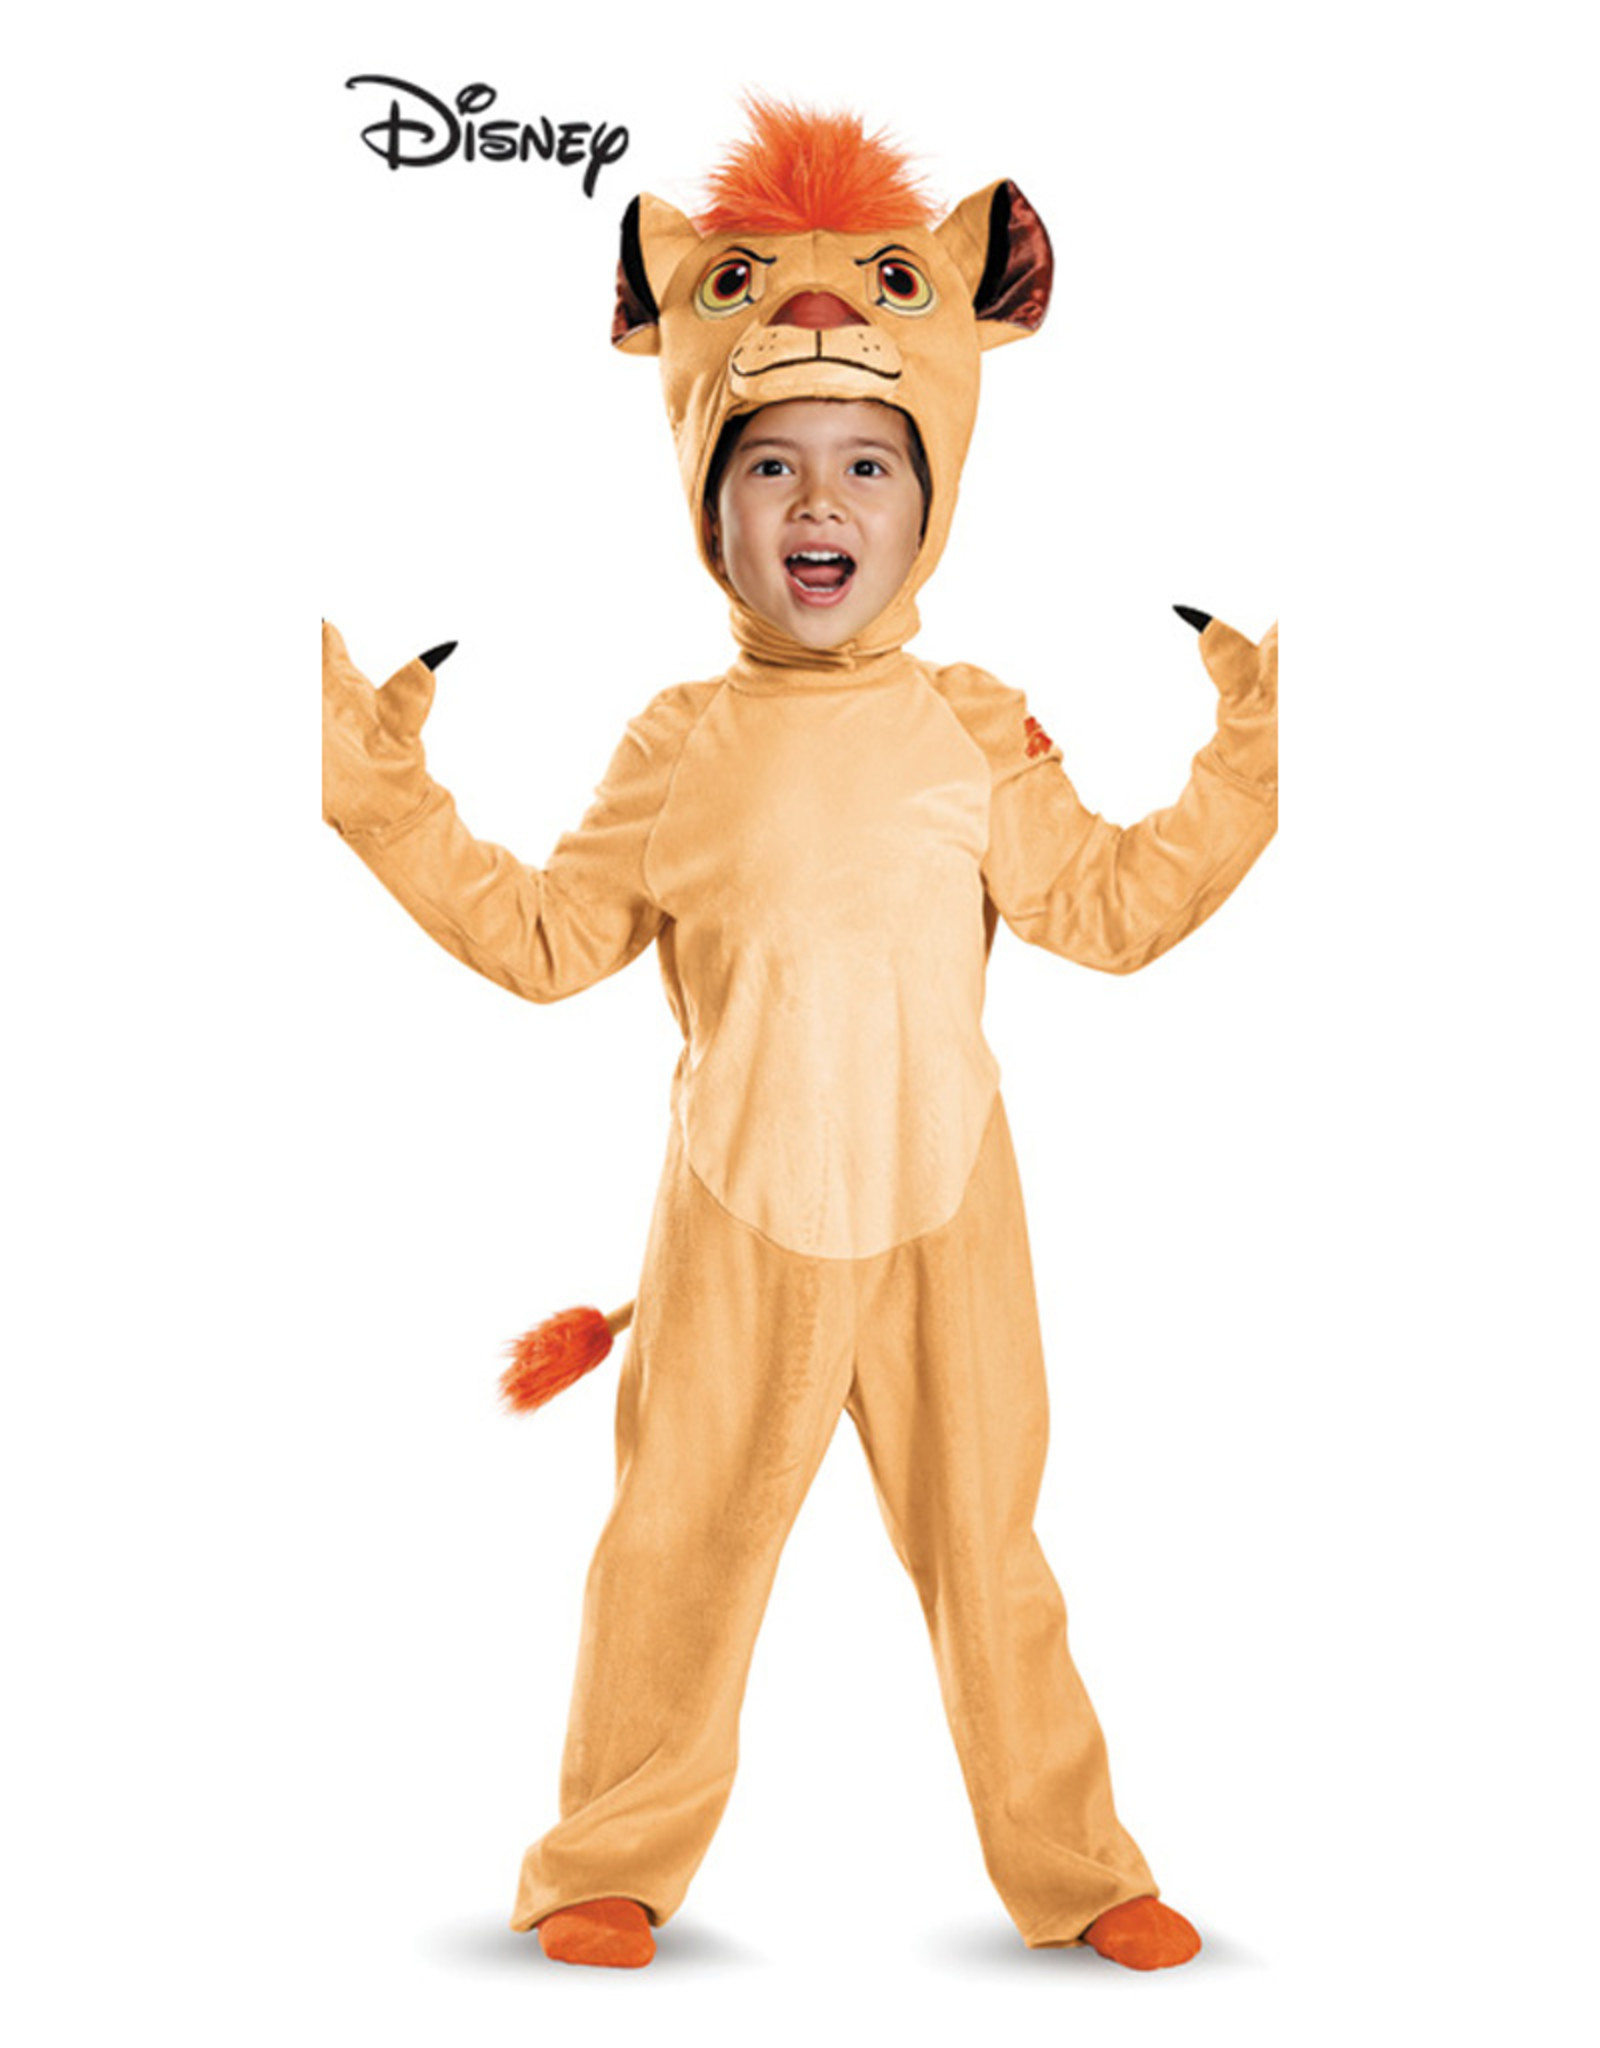 DISGUISE Kion - The Lion Guard Deluxe Costume - Toddler